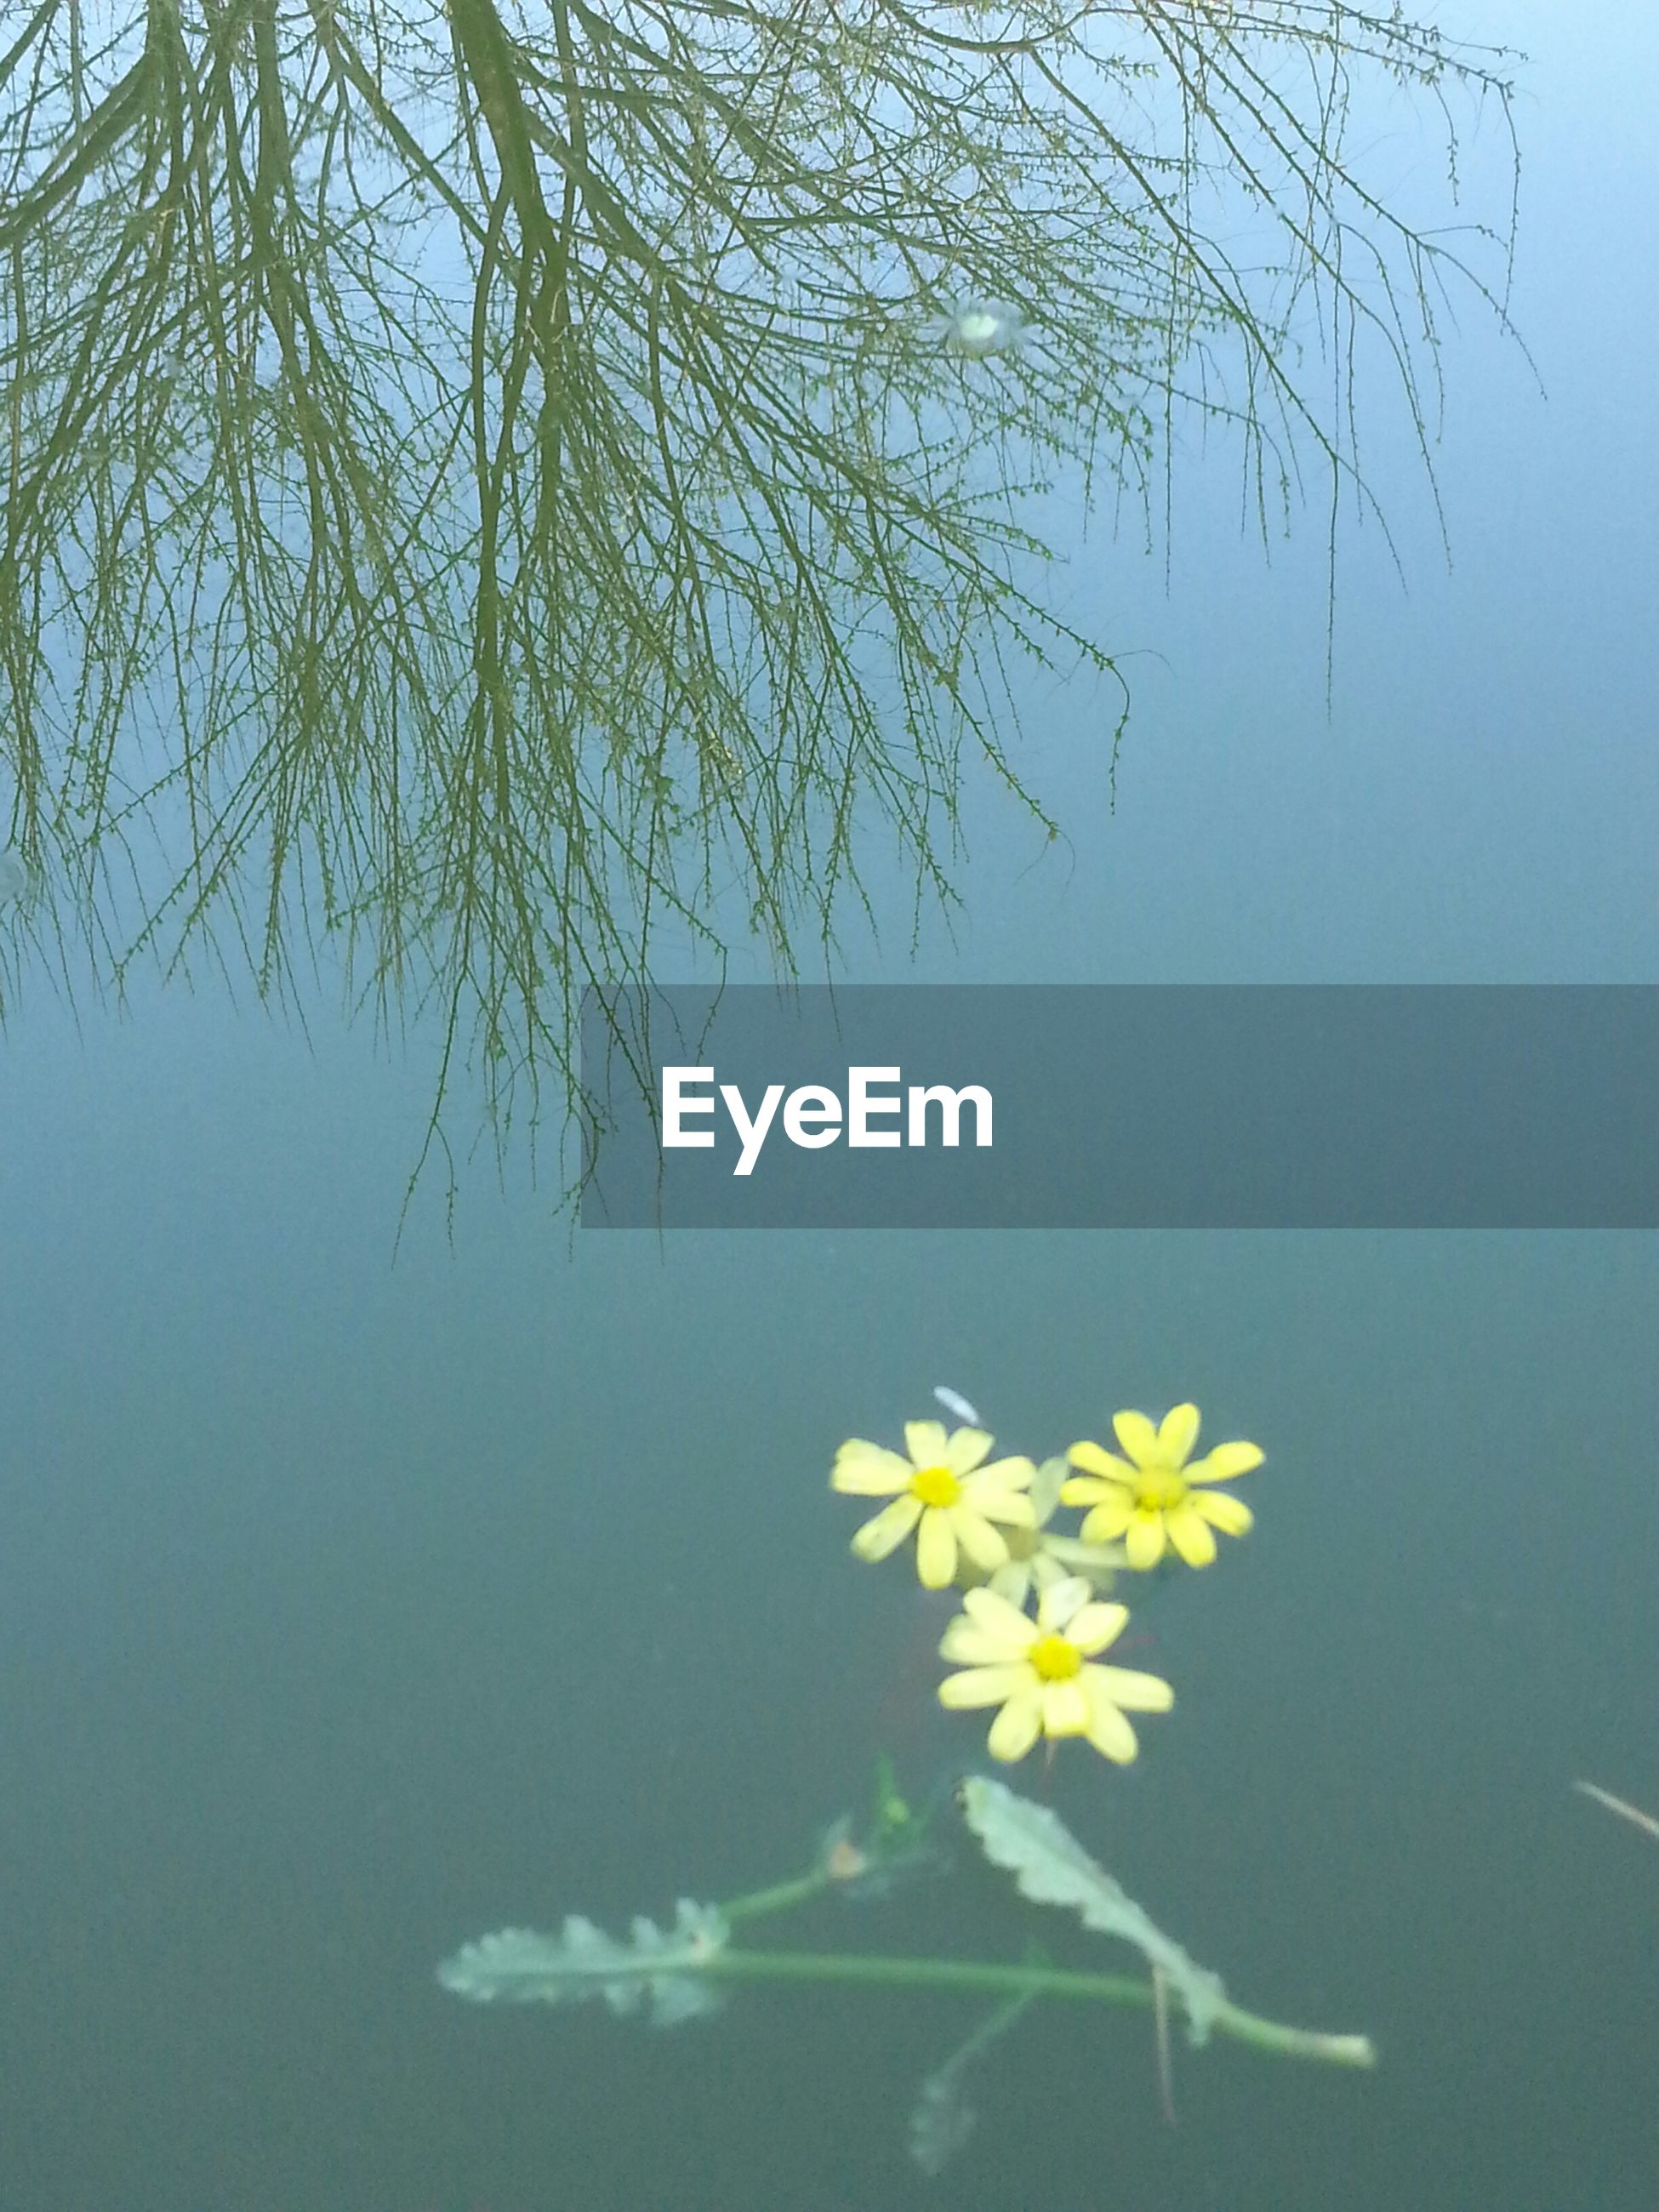 flower, water, beauty in nature, growth, nature, freshness, fragility, petal, branch, lake, plant, leaf, reflection, waterfront, tree, tranquility, yellow, pond, blooming, no people